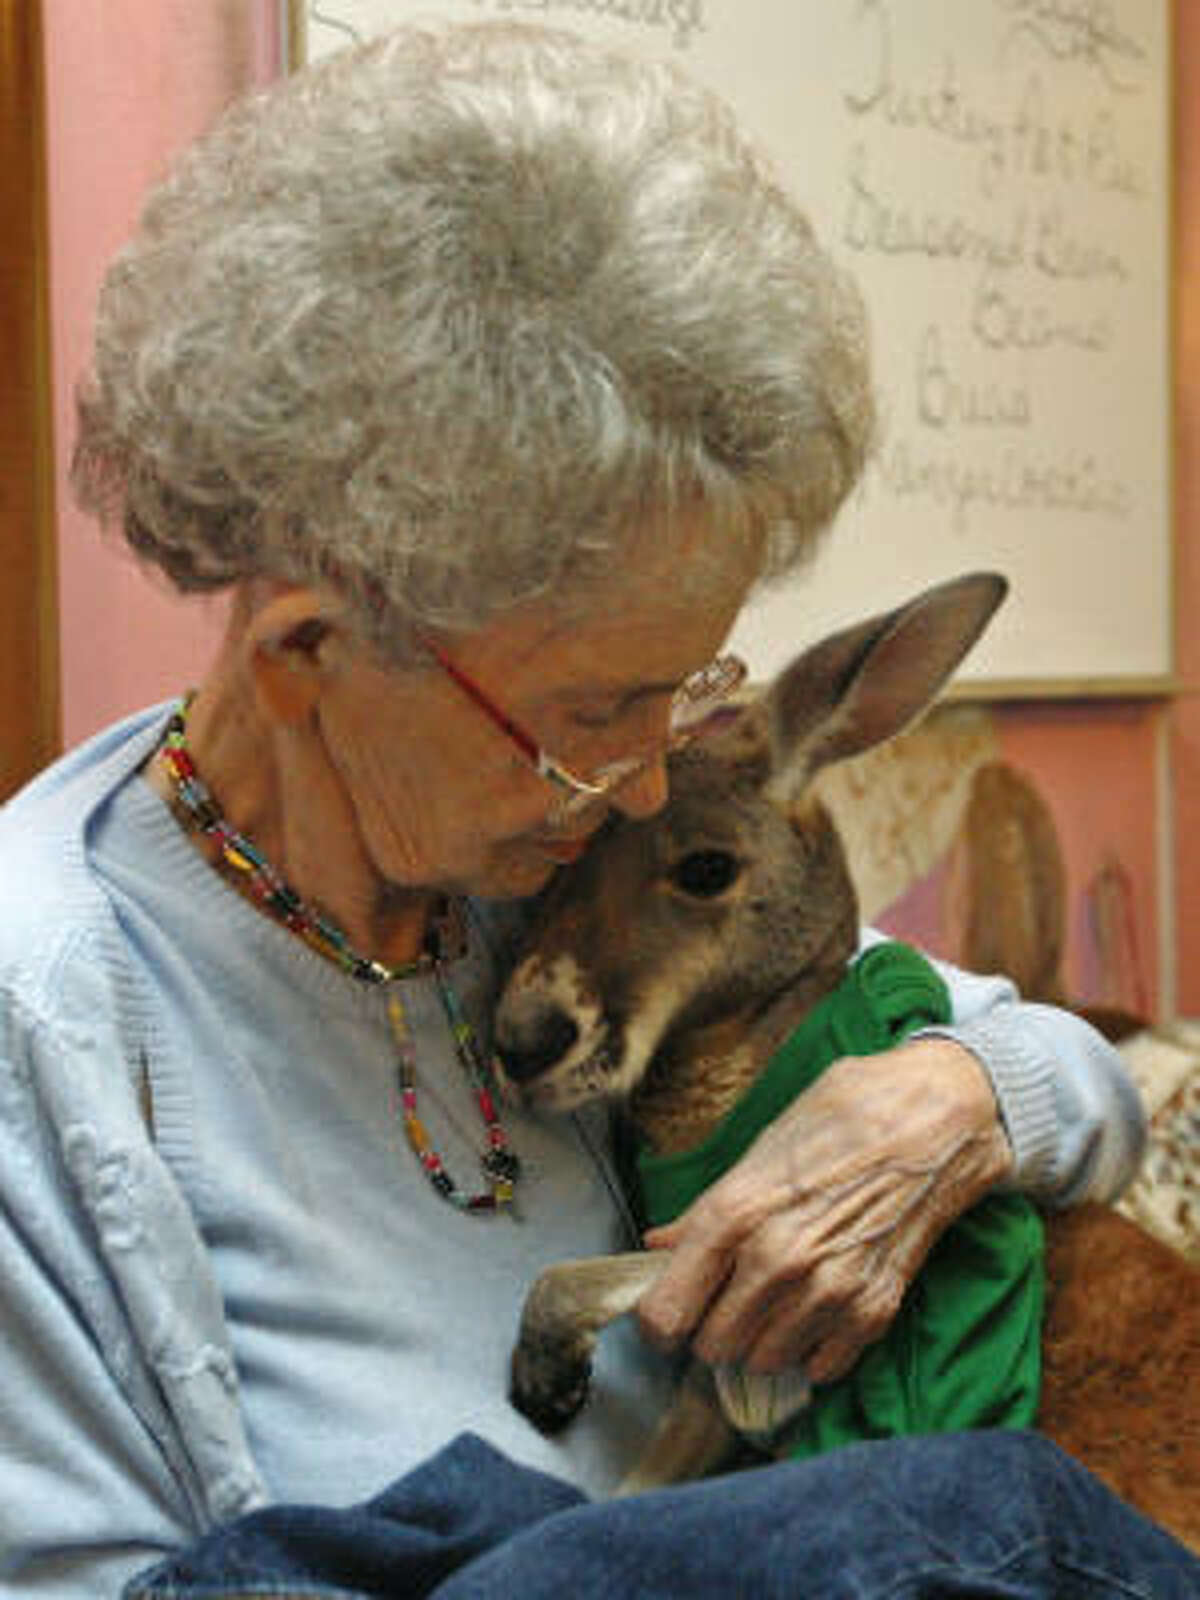 In this March 30, 2011 photo, Nette Hudson cuddles Irwin at Broken Arrow Nursing Home in Broken Arrow, Okla. Irwin's owner Christie Carr suffers from depression and has found solace in Irwin, but local city officials worry that the partially paralyzed therapy pet could become a public safety risk.